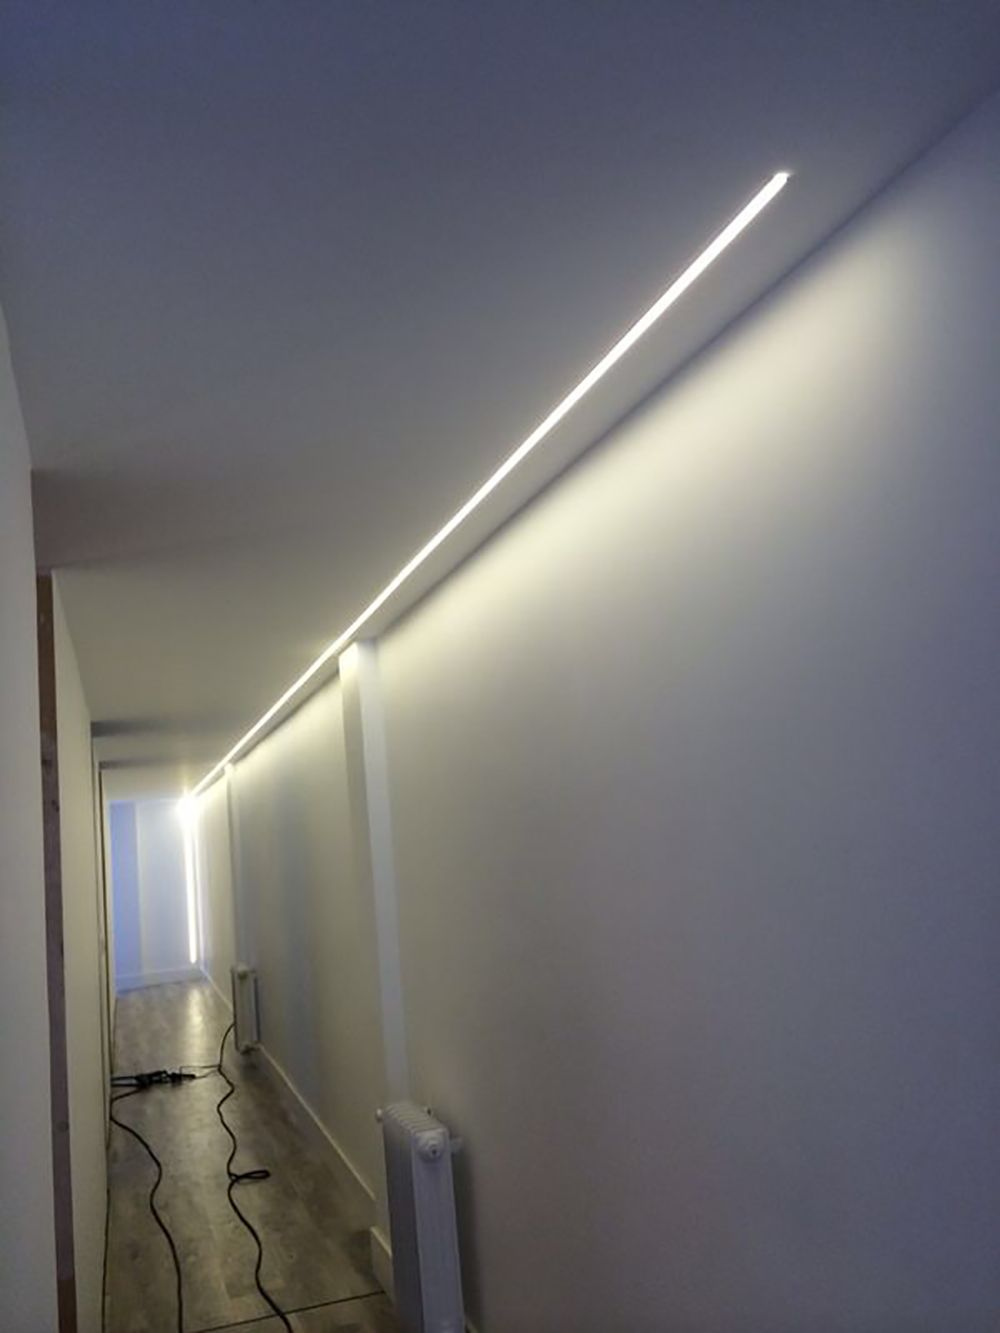 Ideas de decoraci n e iluminaci n con tiras de leds - Decoracion con luces ...